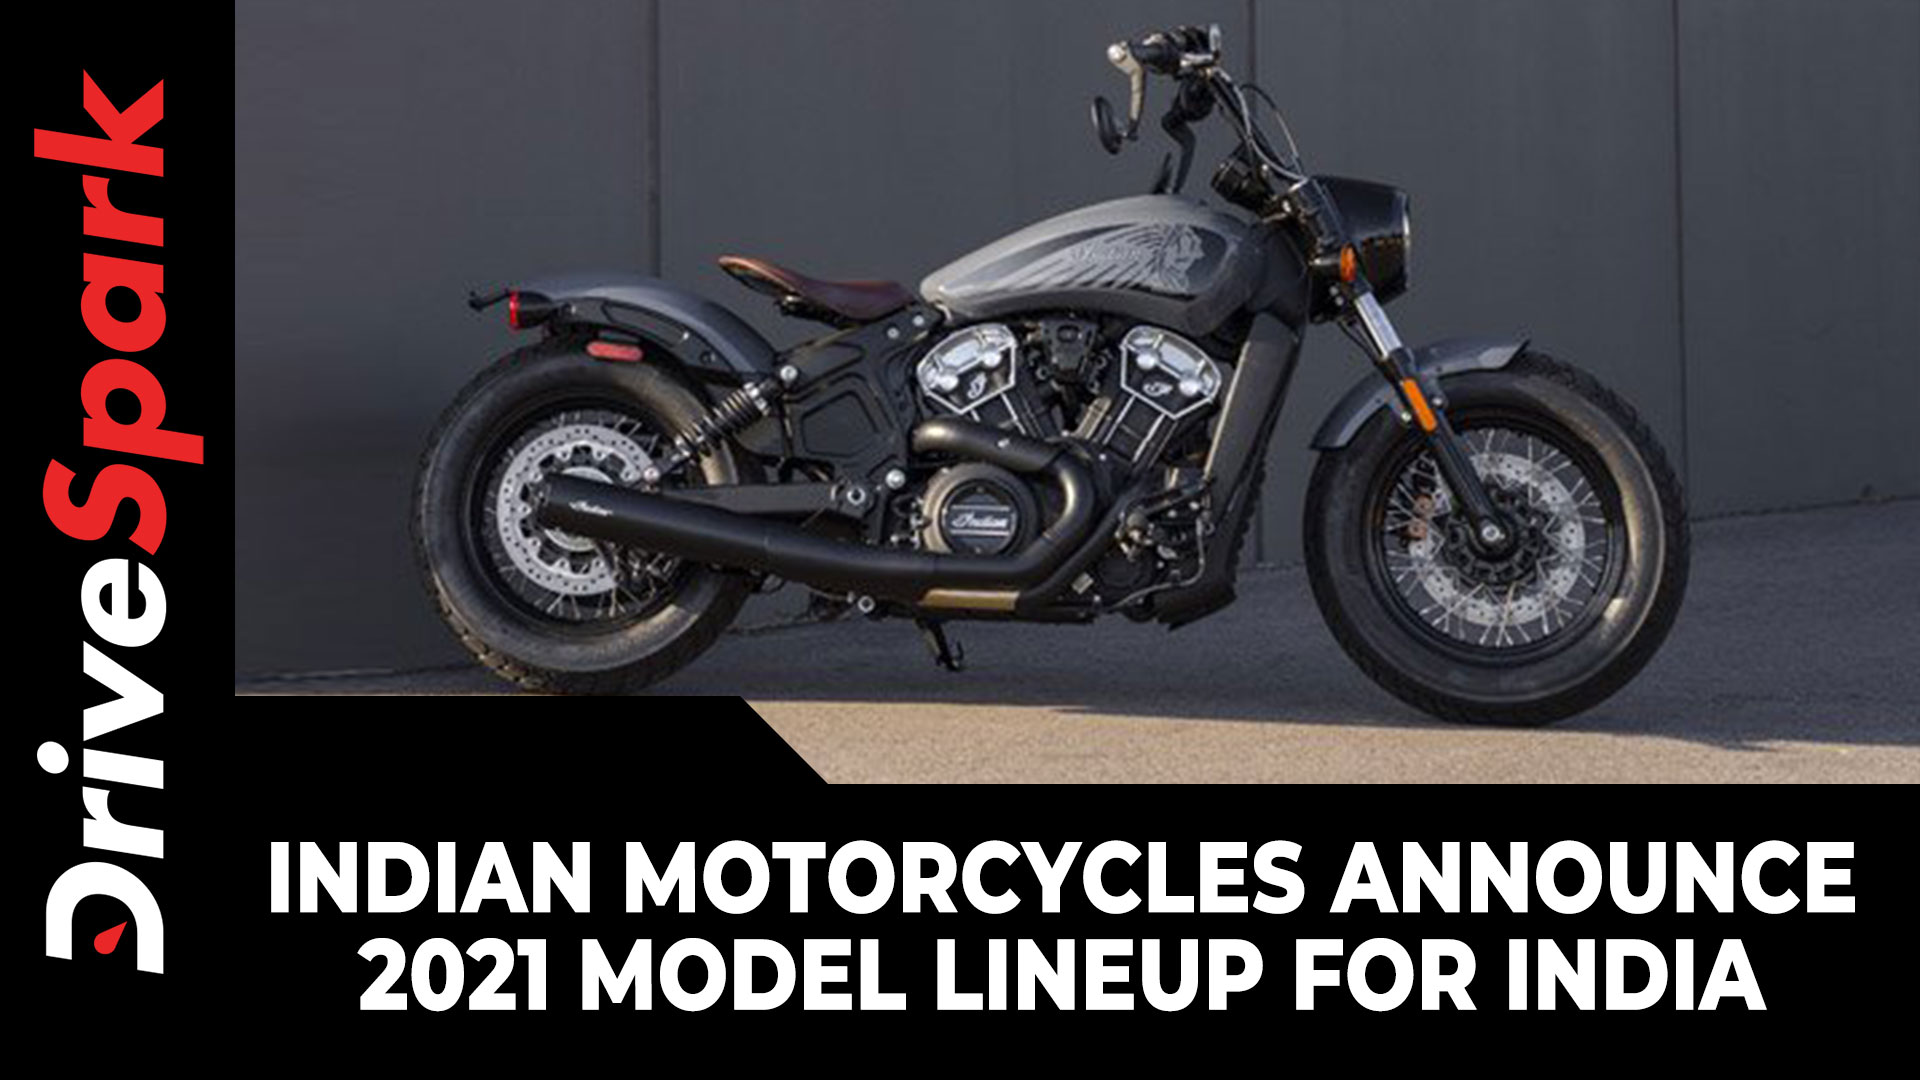 Indian Motorcycles Announce 2021 Model Lineup For India | Here Are All The Models Listed!